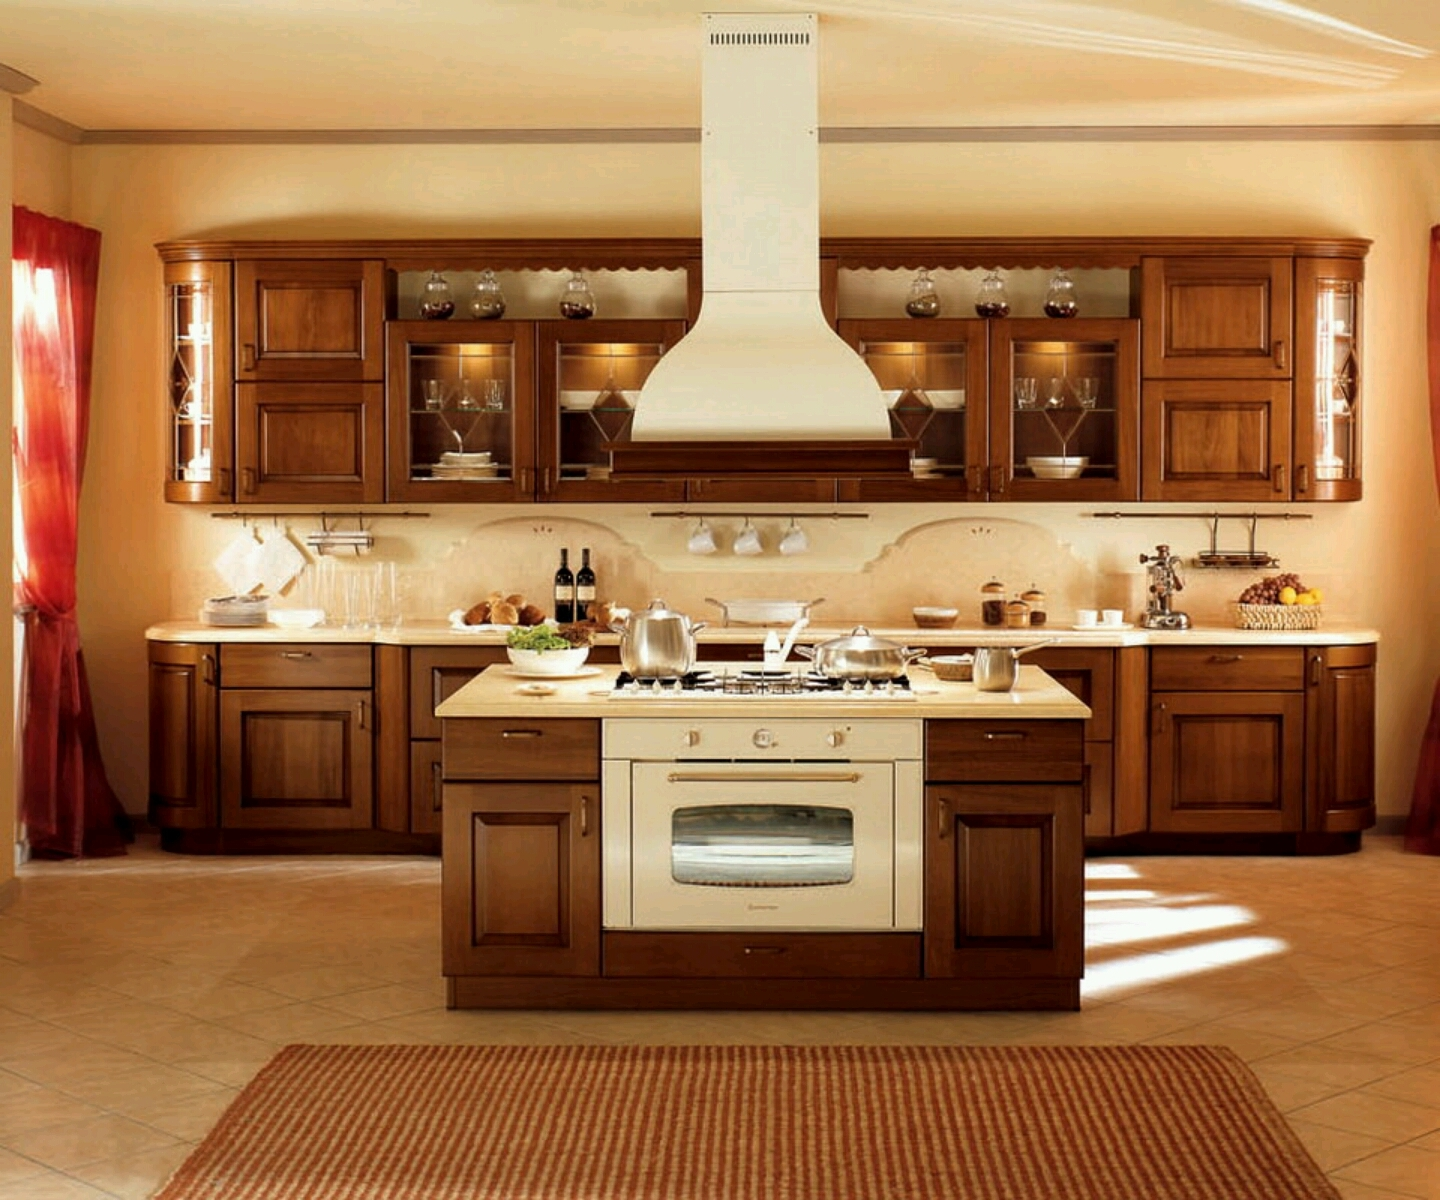 Design Top Of Kitchen Cabinets